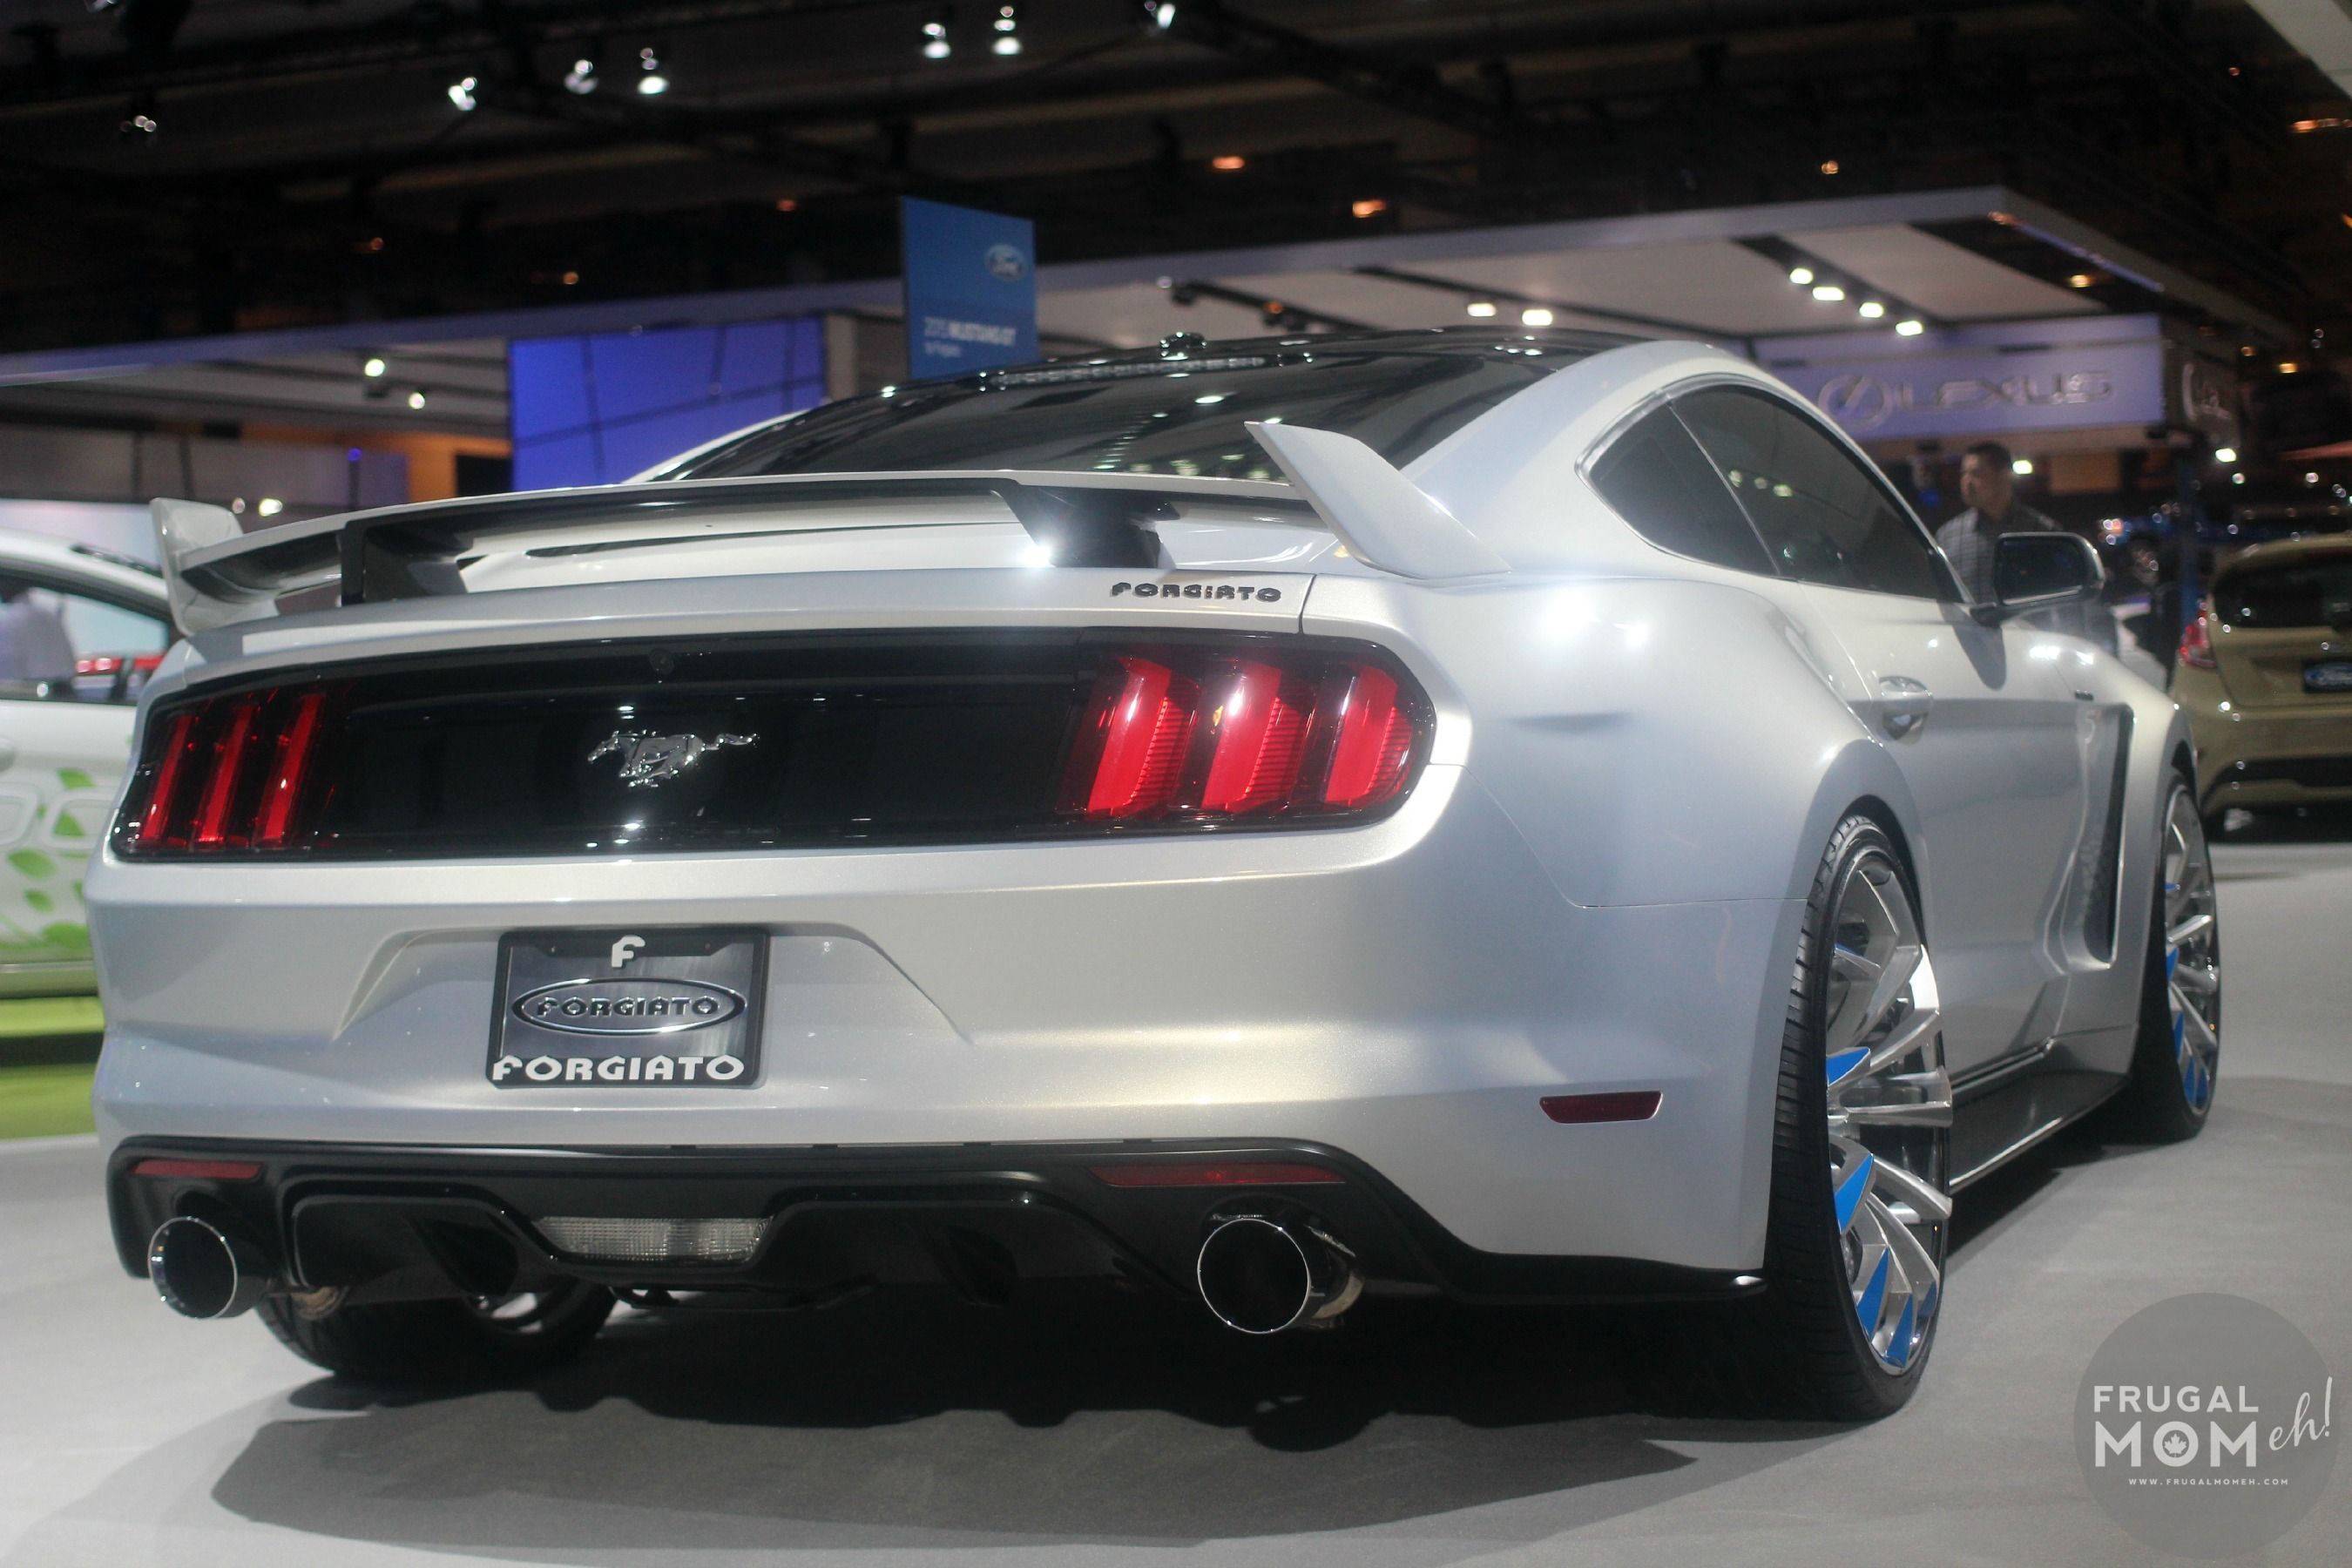 2015 ford shelby gt350r mustang 2017 ford gt and more from ford cias2015 ford shelby ford gt and 2017 mustang